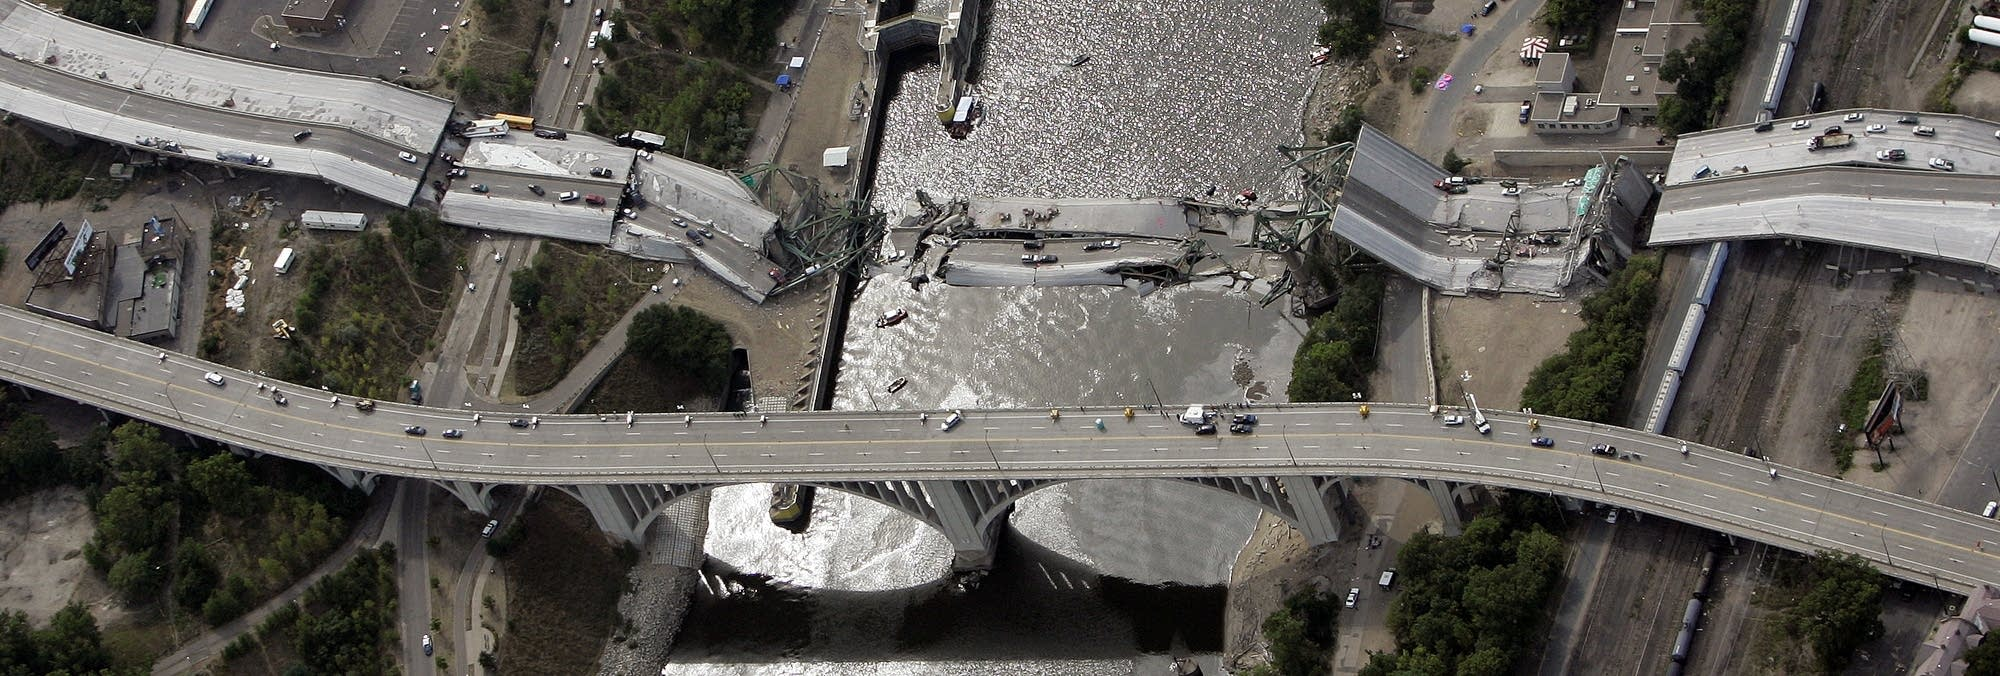 The Interstate 35W-bridge-collapse-2007